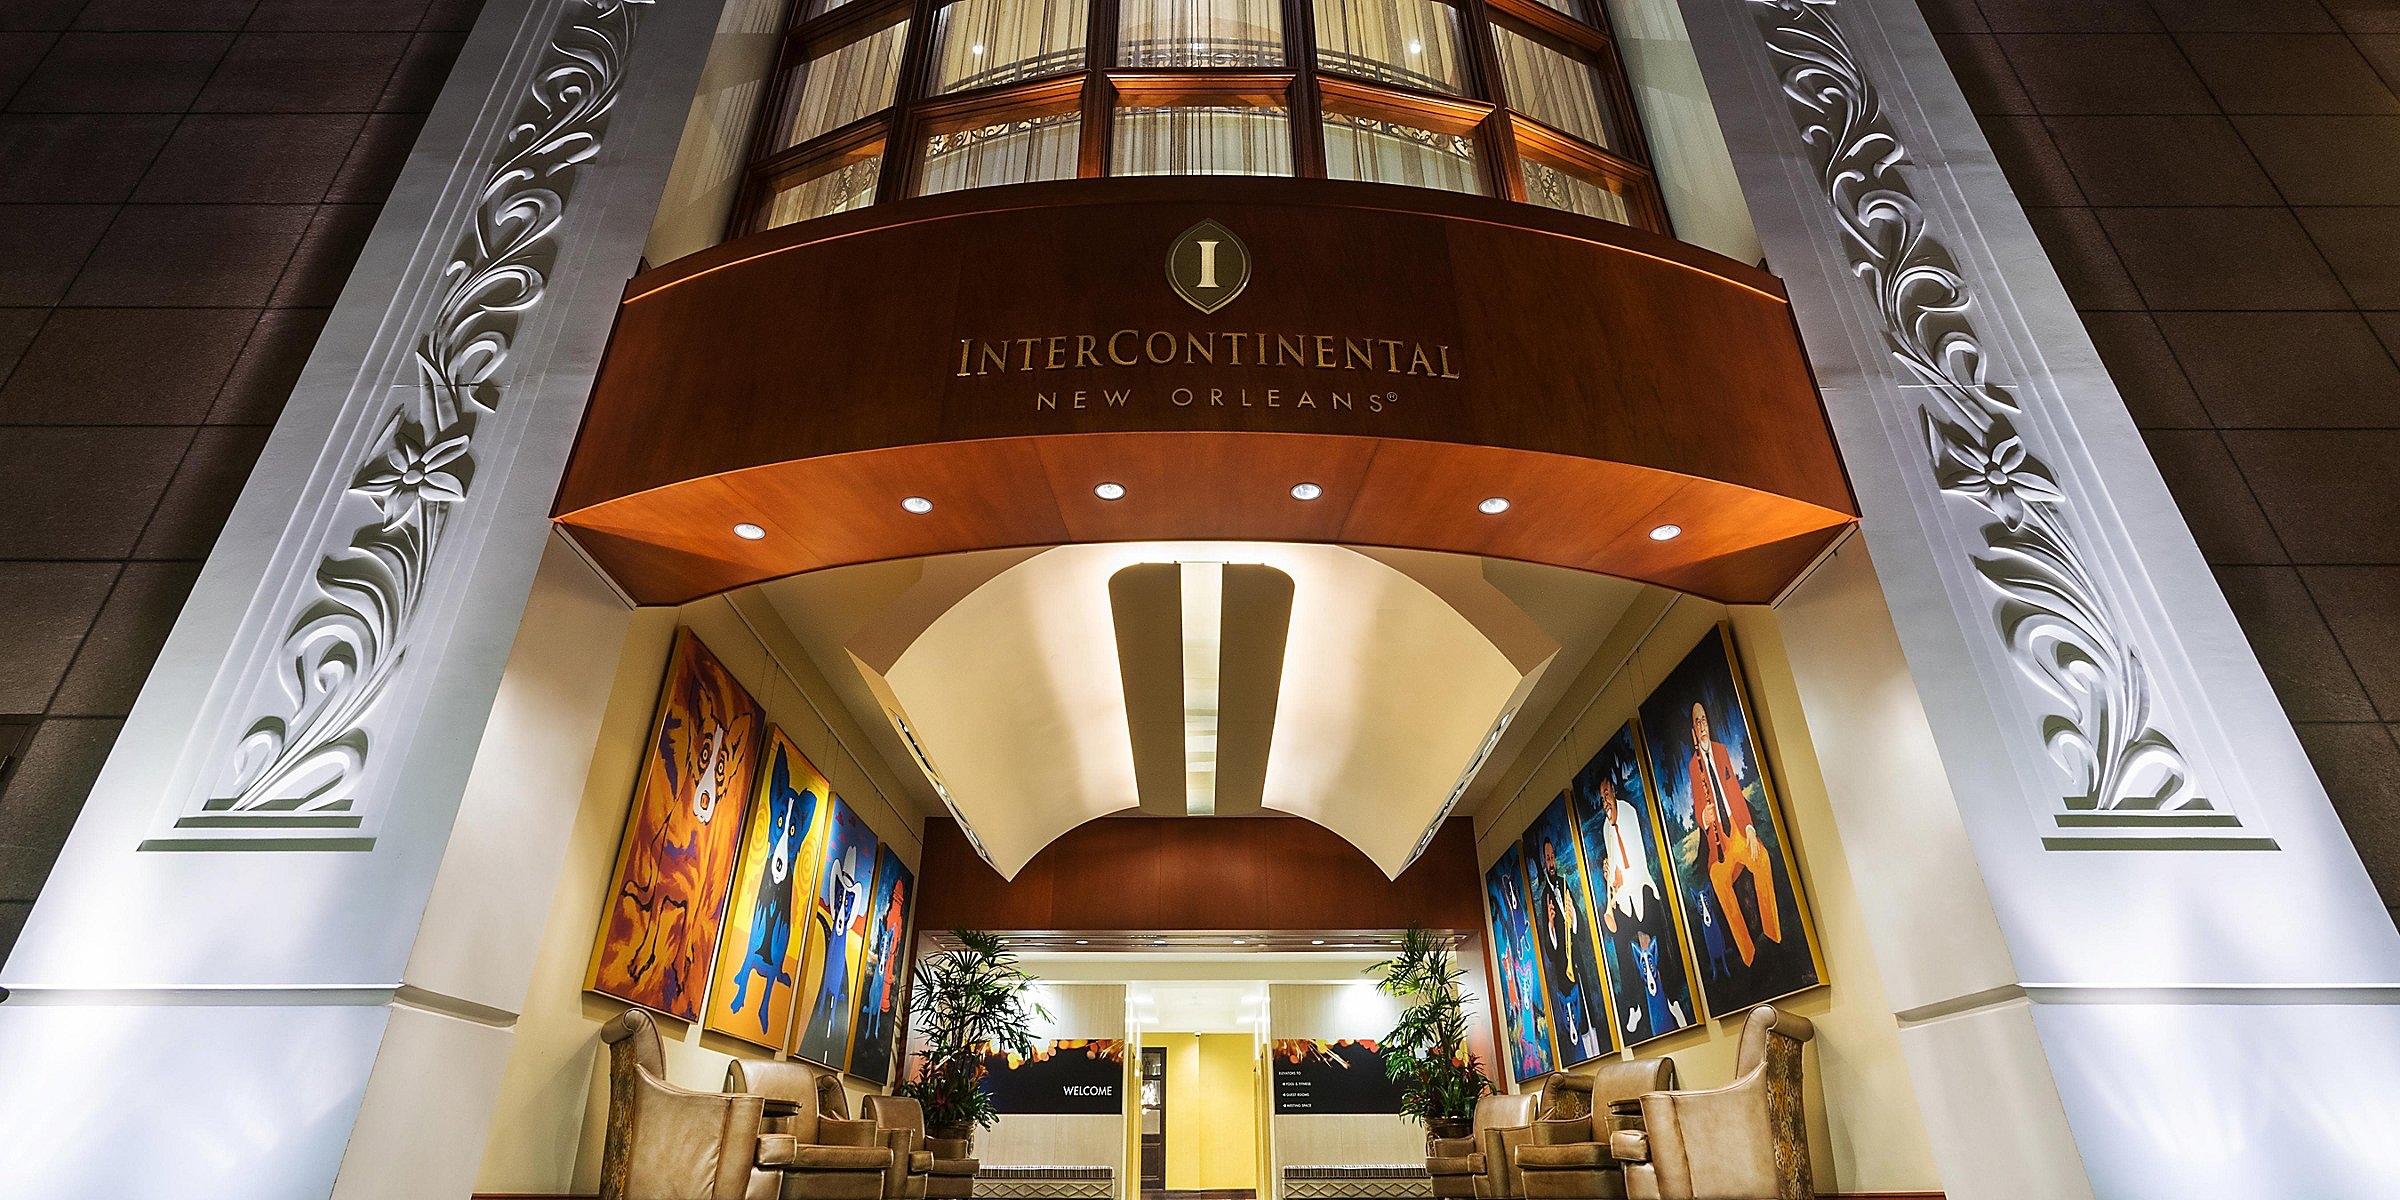 Intercontinental New Orleans Hotels In New Orleans French Quarter